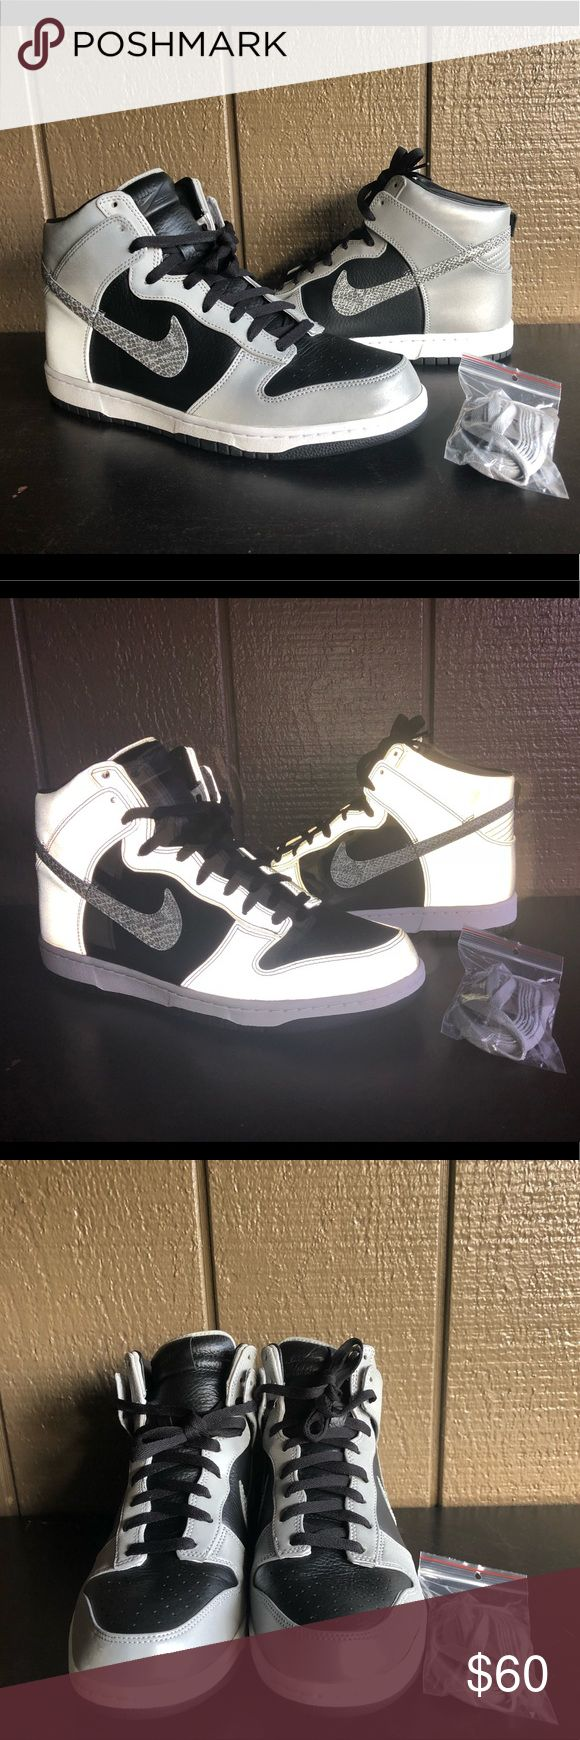 "Dunk Premium High SP ""3M Snake"" Men's Shoes Sz 12 Dunk Premium High SP ""3M Snake"" Men's Shoes Sz 12  Brand : Nike  Style Code : 624512-100  Color : White/Black-Reflect Silver  Size : Men's 12  Material : Leather  3M Reflective when the shoes hit the light  Worn once  In excellent condition  Comes with original box.  Box is damaged but works. Nike Shoes Sneakers"